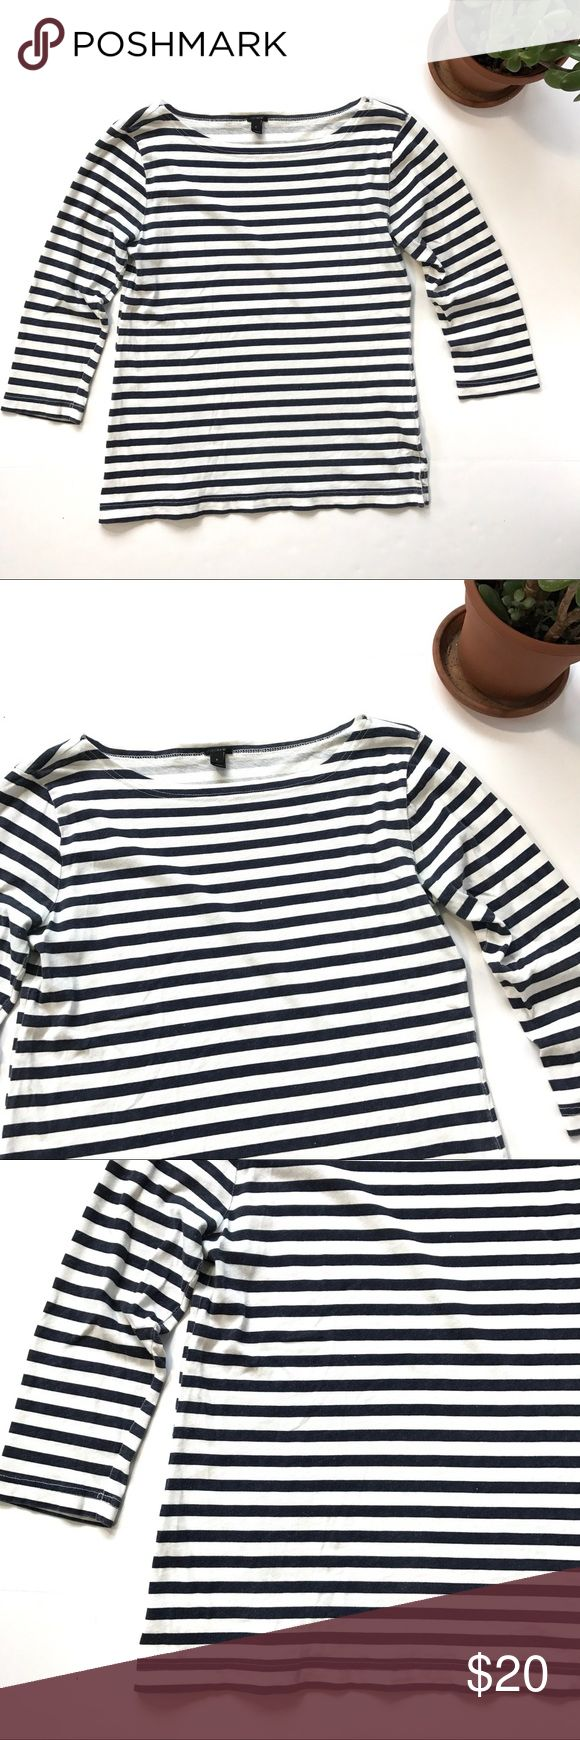 J.Crew Bateau T-Shirt white navy blue stripe small This is a J.Crew Bateau T-Shirt in stripe - a classic nautical striped knit top with a timeless boatneck neckline. It is women's size small.  This shirt is in pre-owned condition with light wear, no holes, and no stains. Please take a look through the photos to see if this item is right for you! J. Crew Tops Tees - Long Sleeve